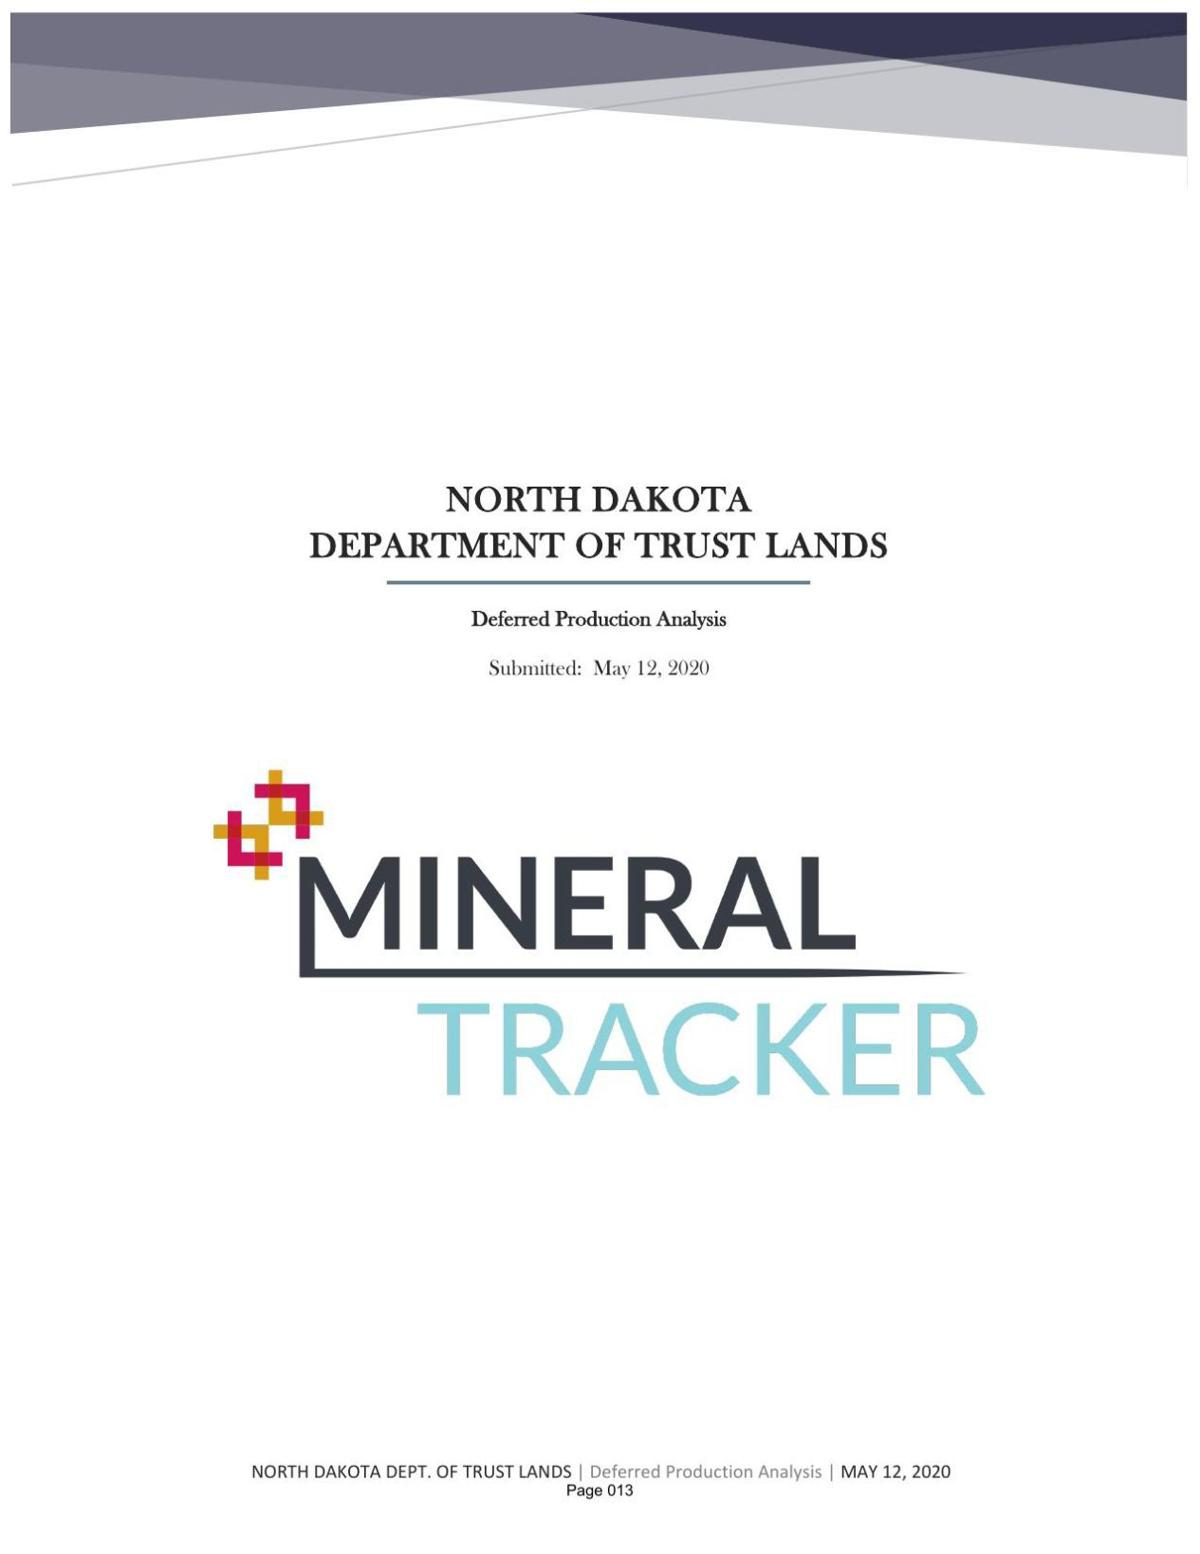 MineralTracker Projections